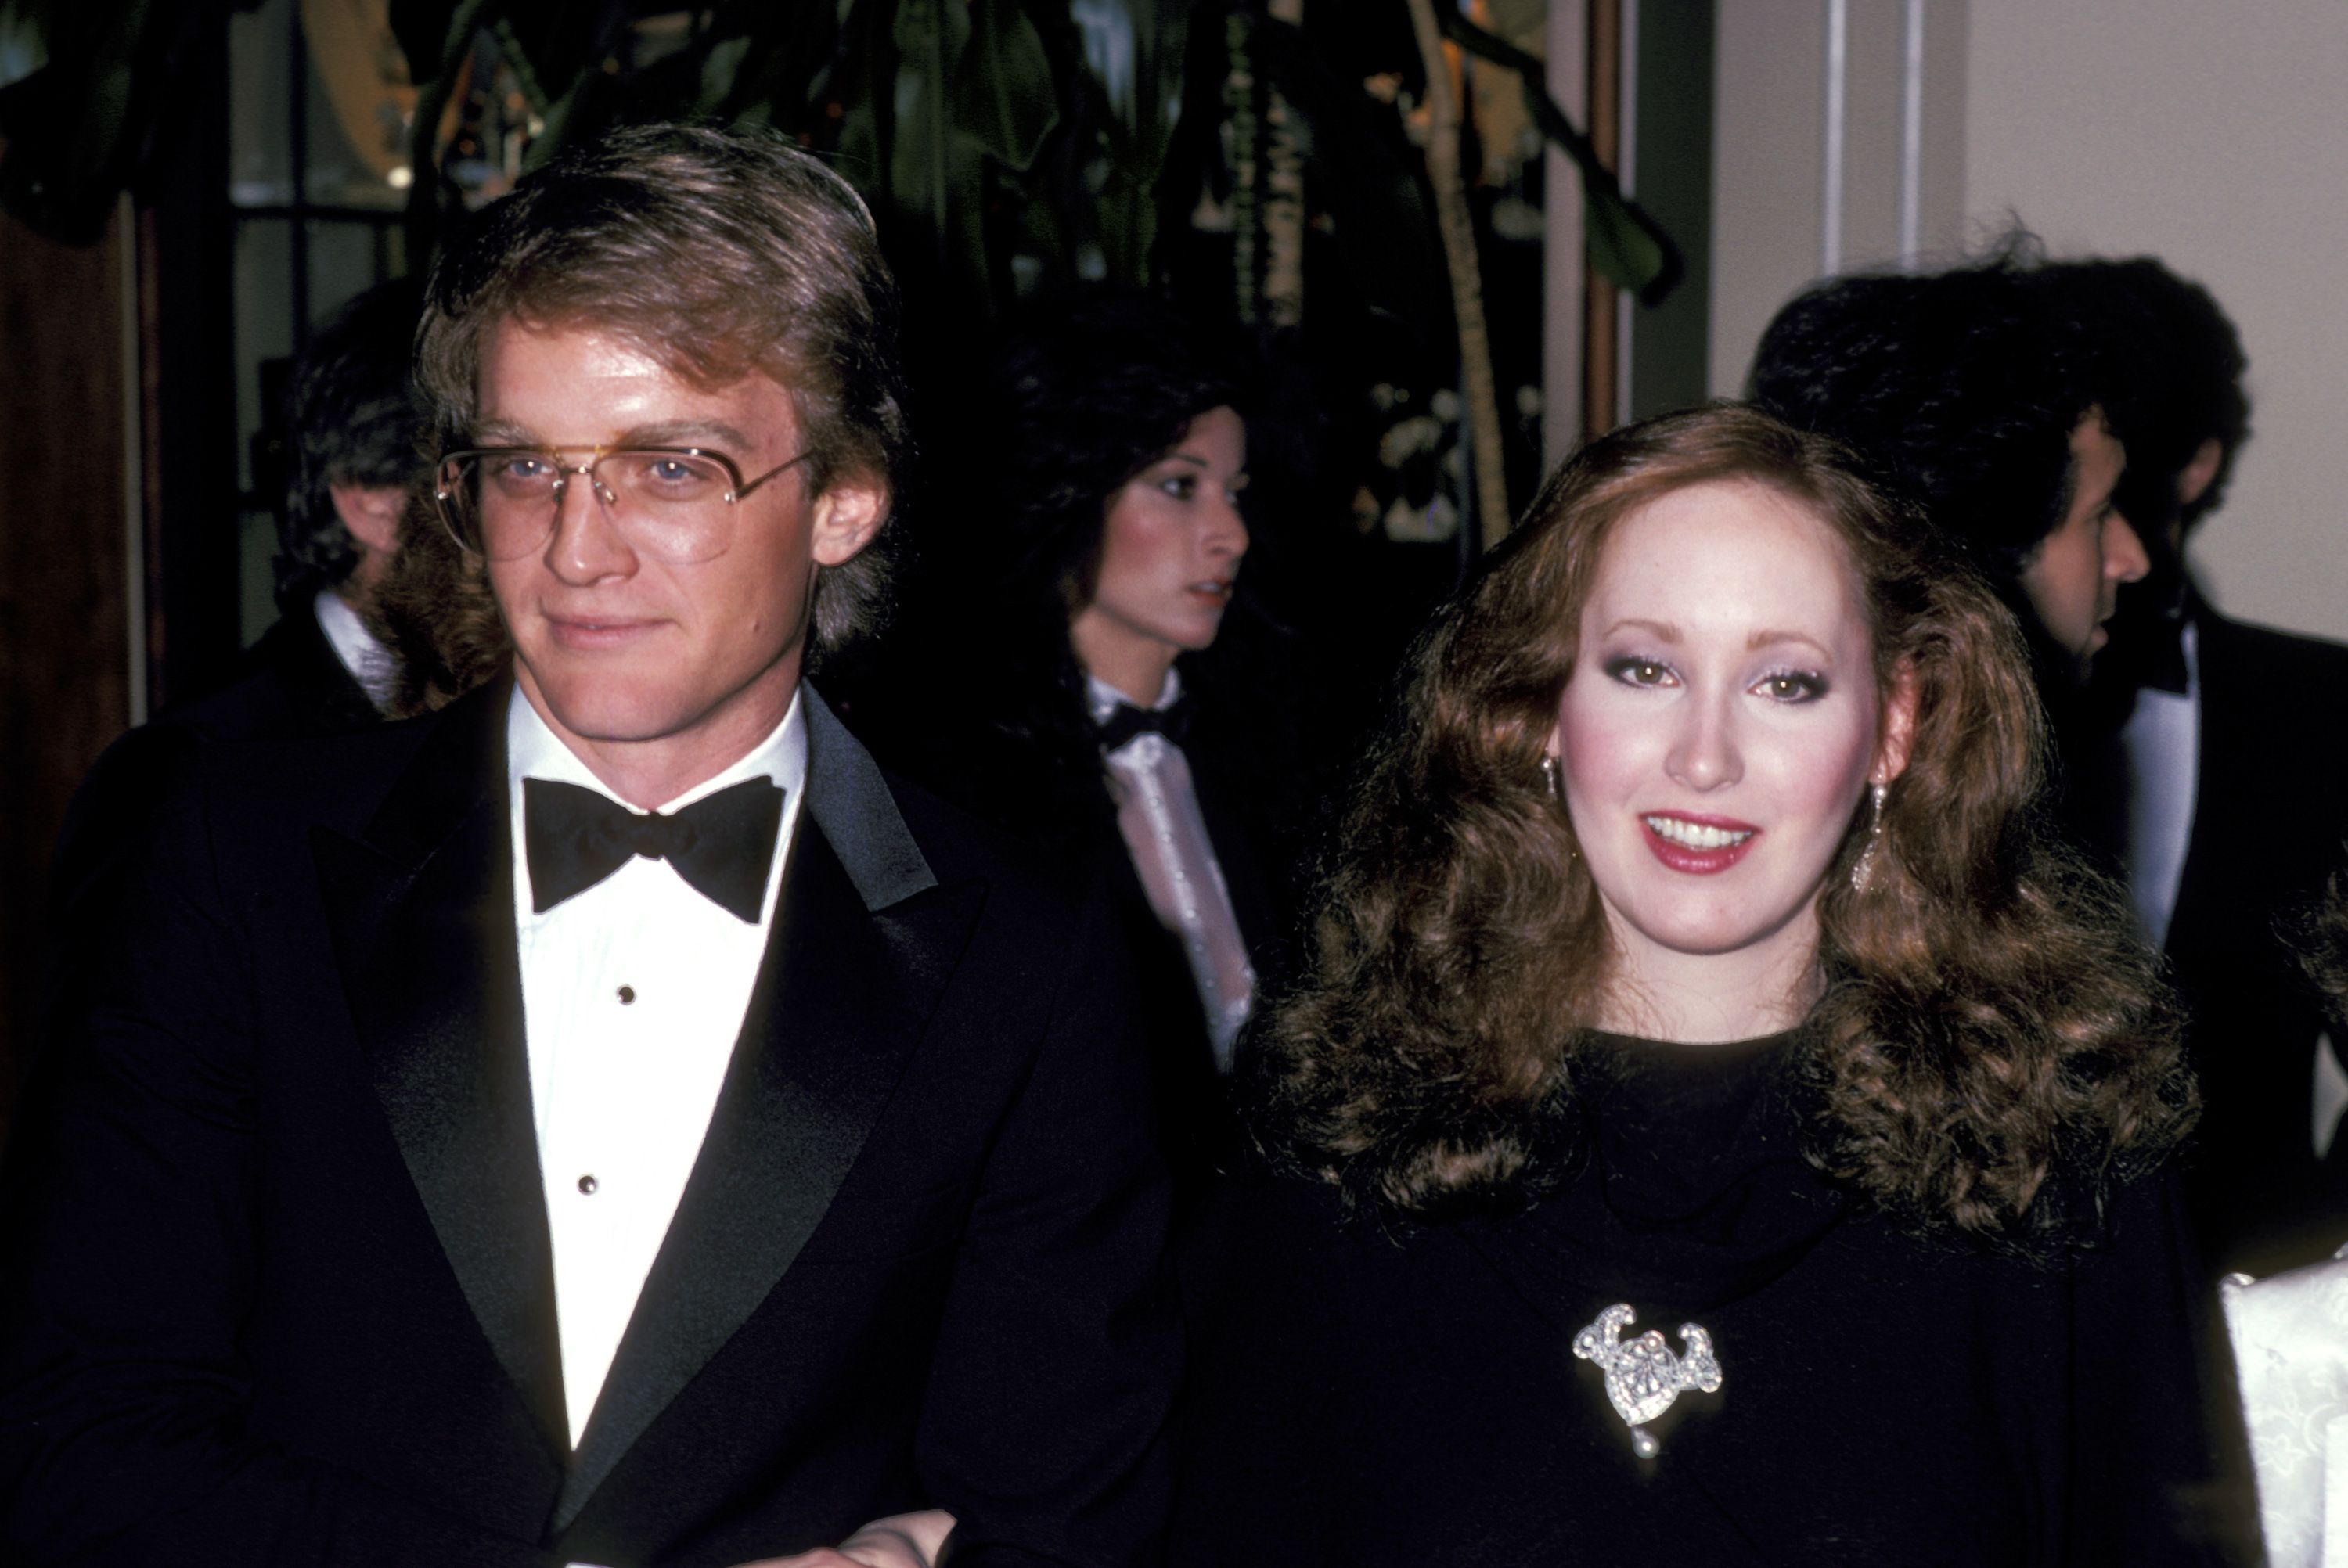 Terry Lester and Susan Newman at the 38th Annual Golden Globe Awards at Beverly Hilton Hotel in Beverly Hills, California, United States. | Source: Getty Images